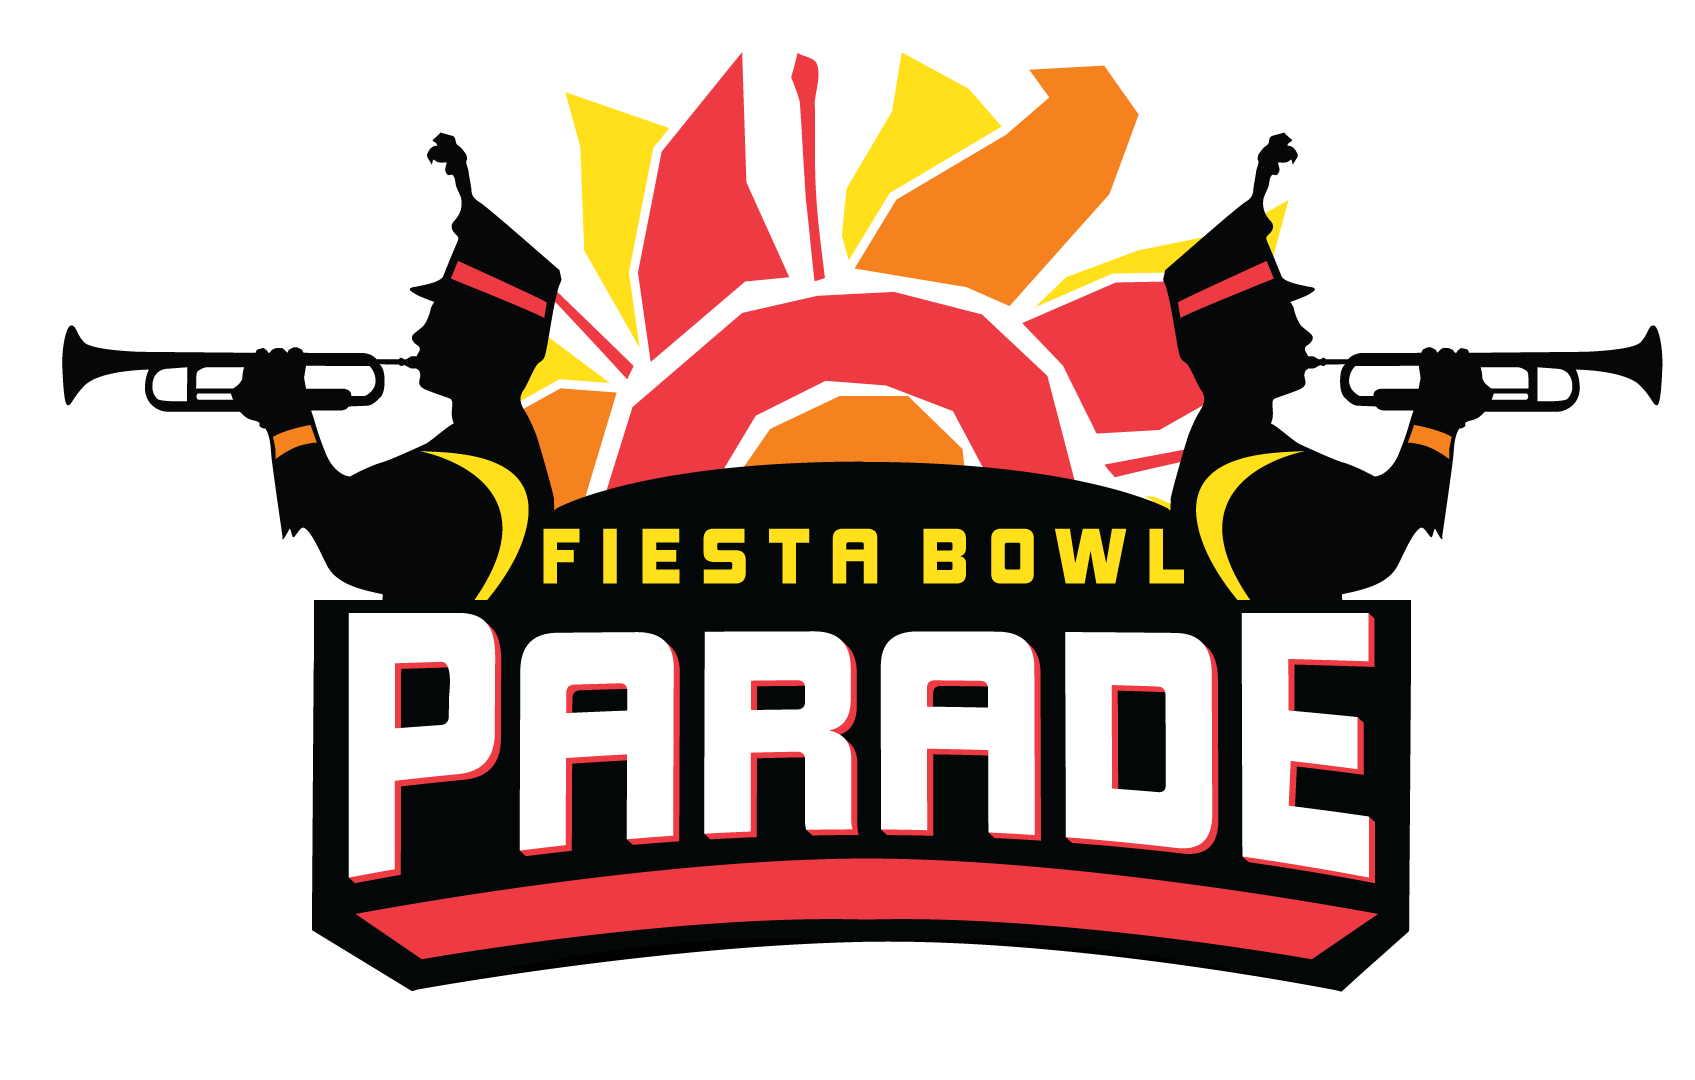 Fiesta clipart school festival. Bowl now accepting applications